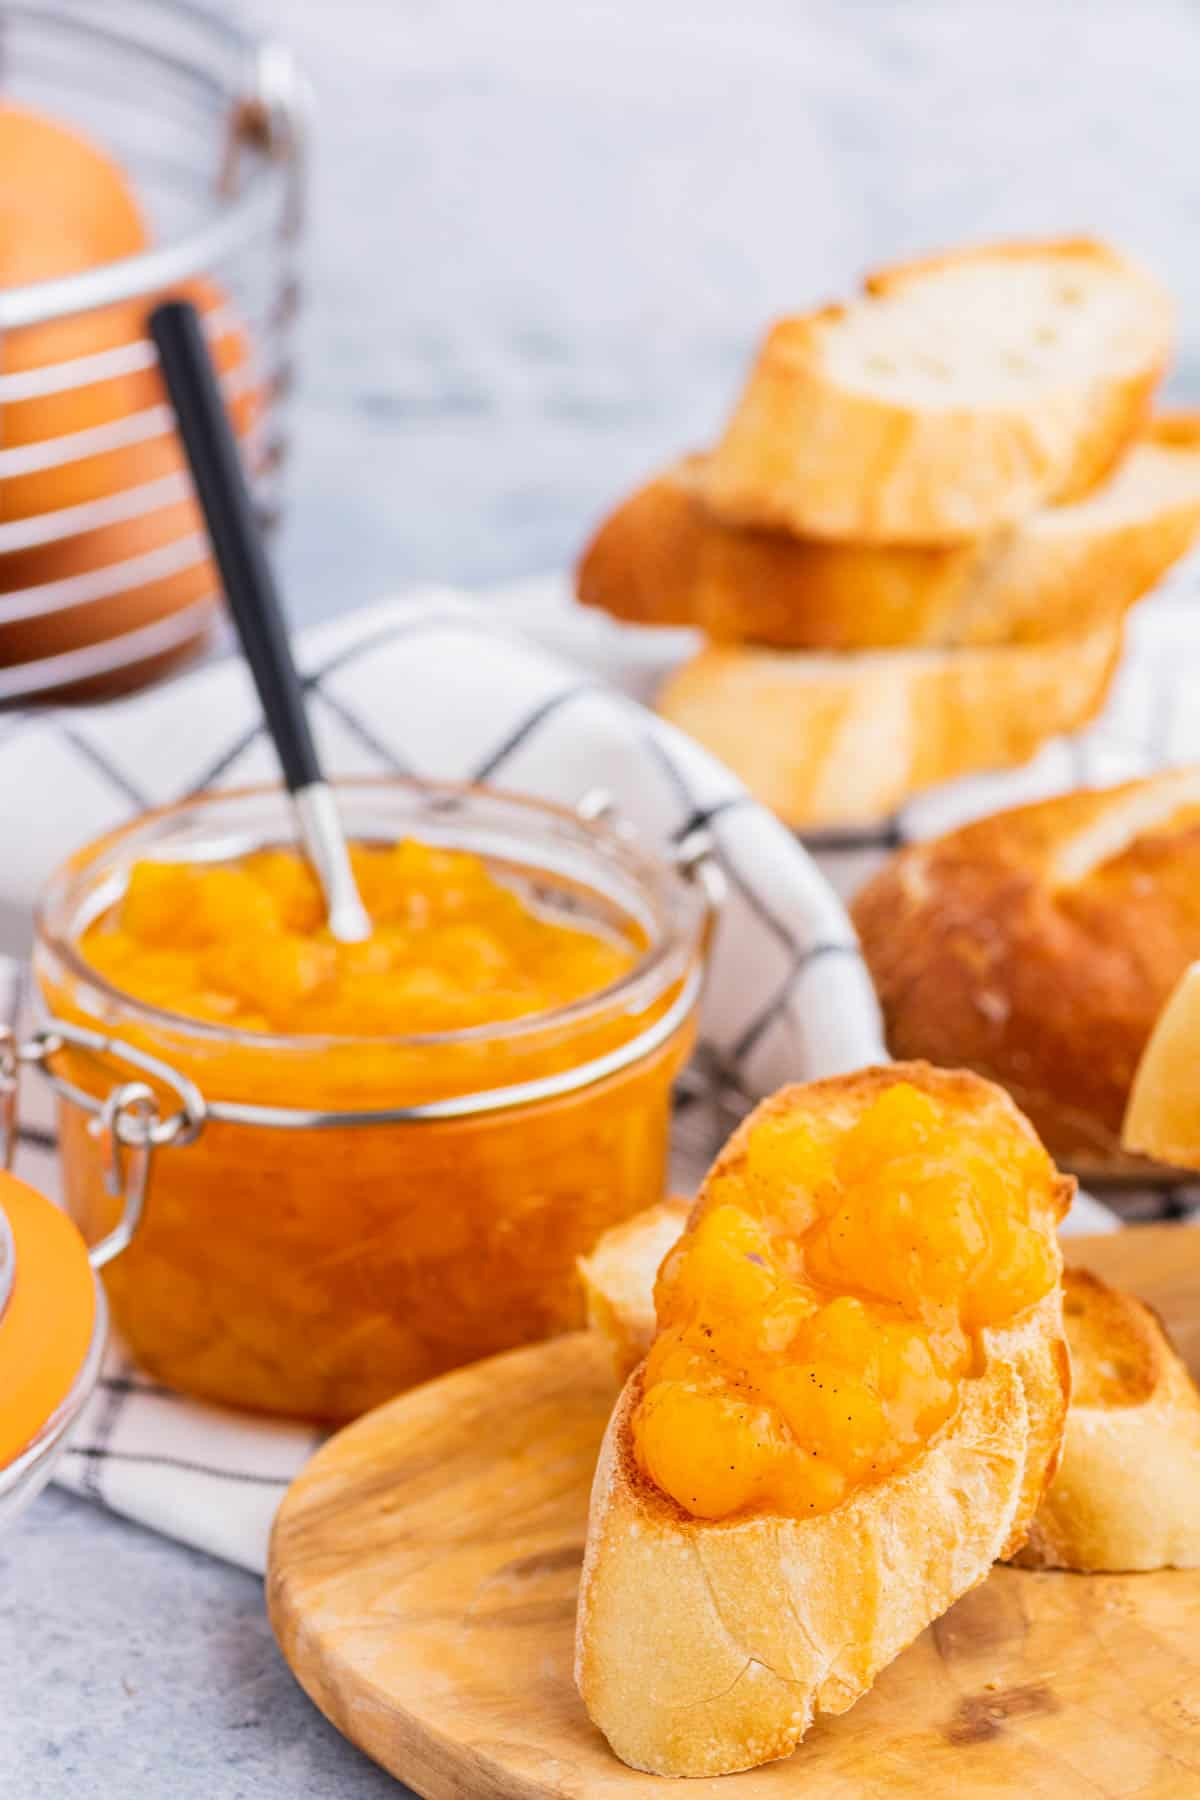 A toast covered in bright orange Peach Freezer Jam in front of a jar of the same jam.